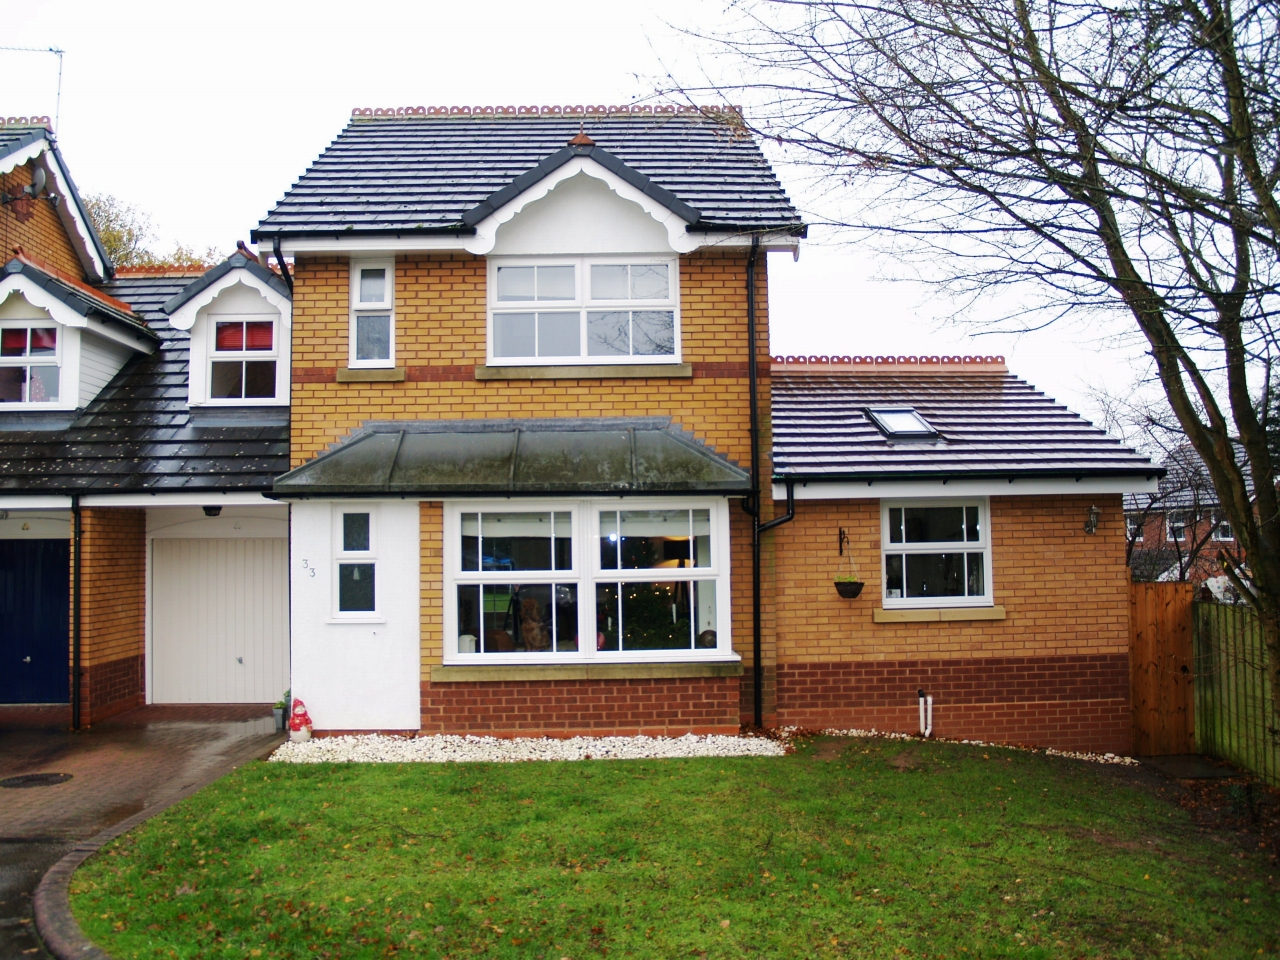 3 bedroom end terraced house SSTC in Solihull - Main Image.